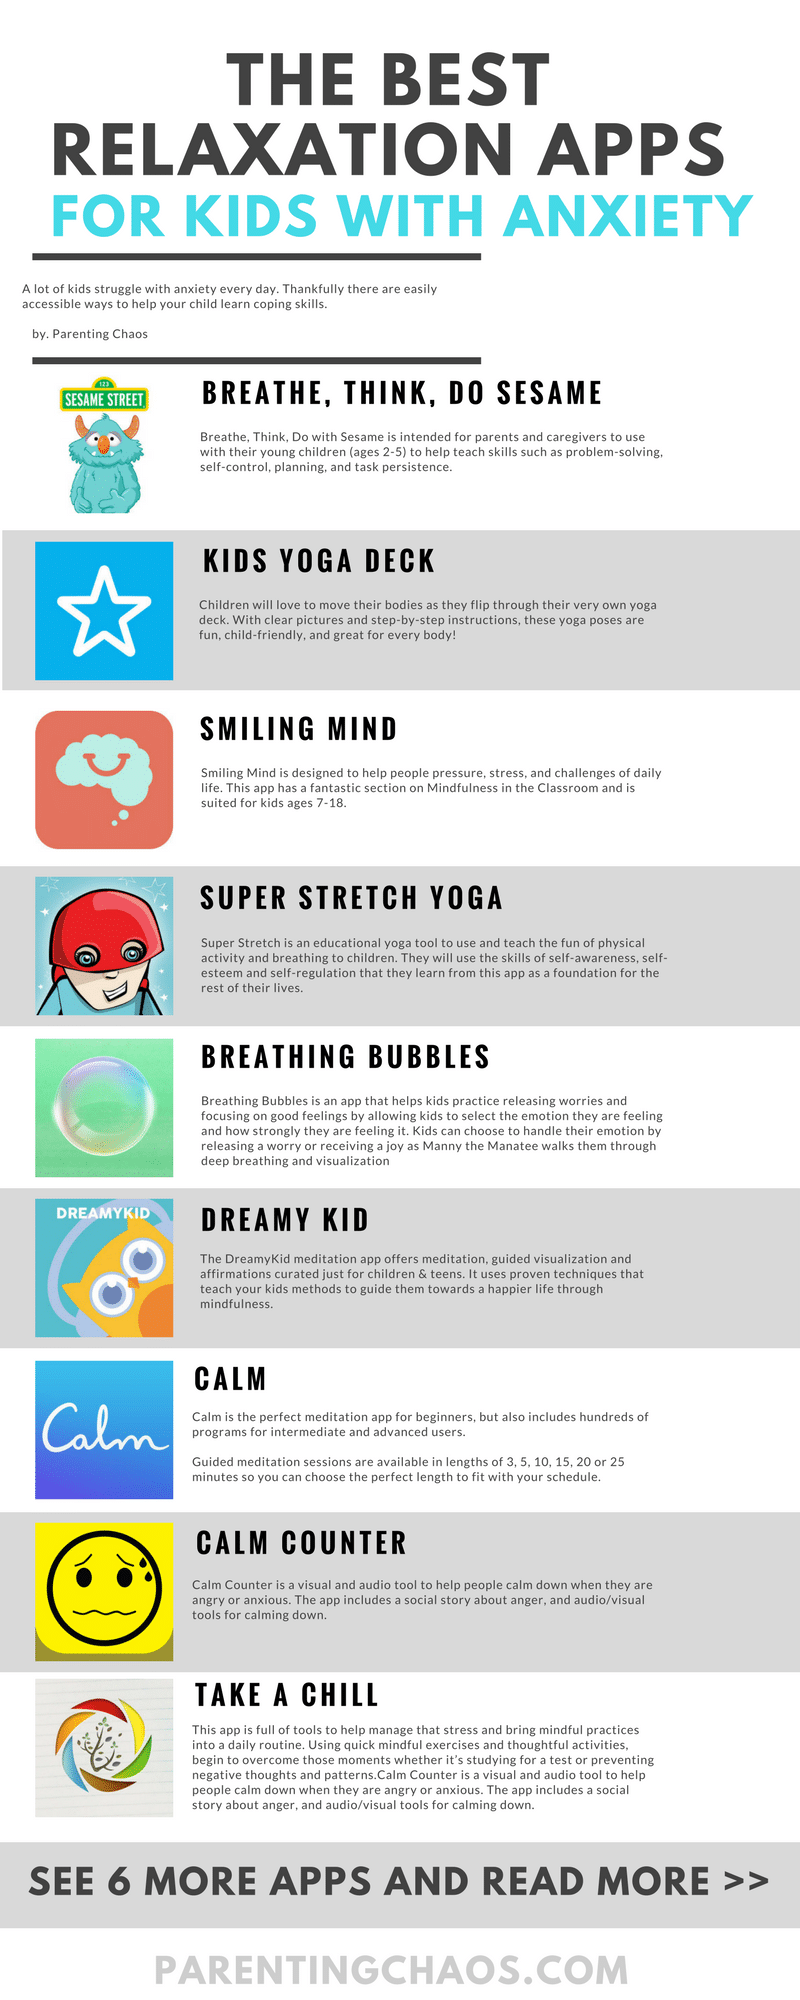 Help Your Child Manage Anxiety >> 15 Mindfulness And Relaxation Apps For Kids With Anxiety